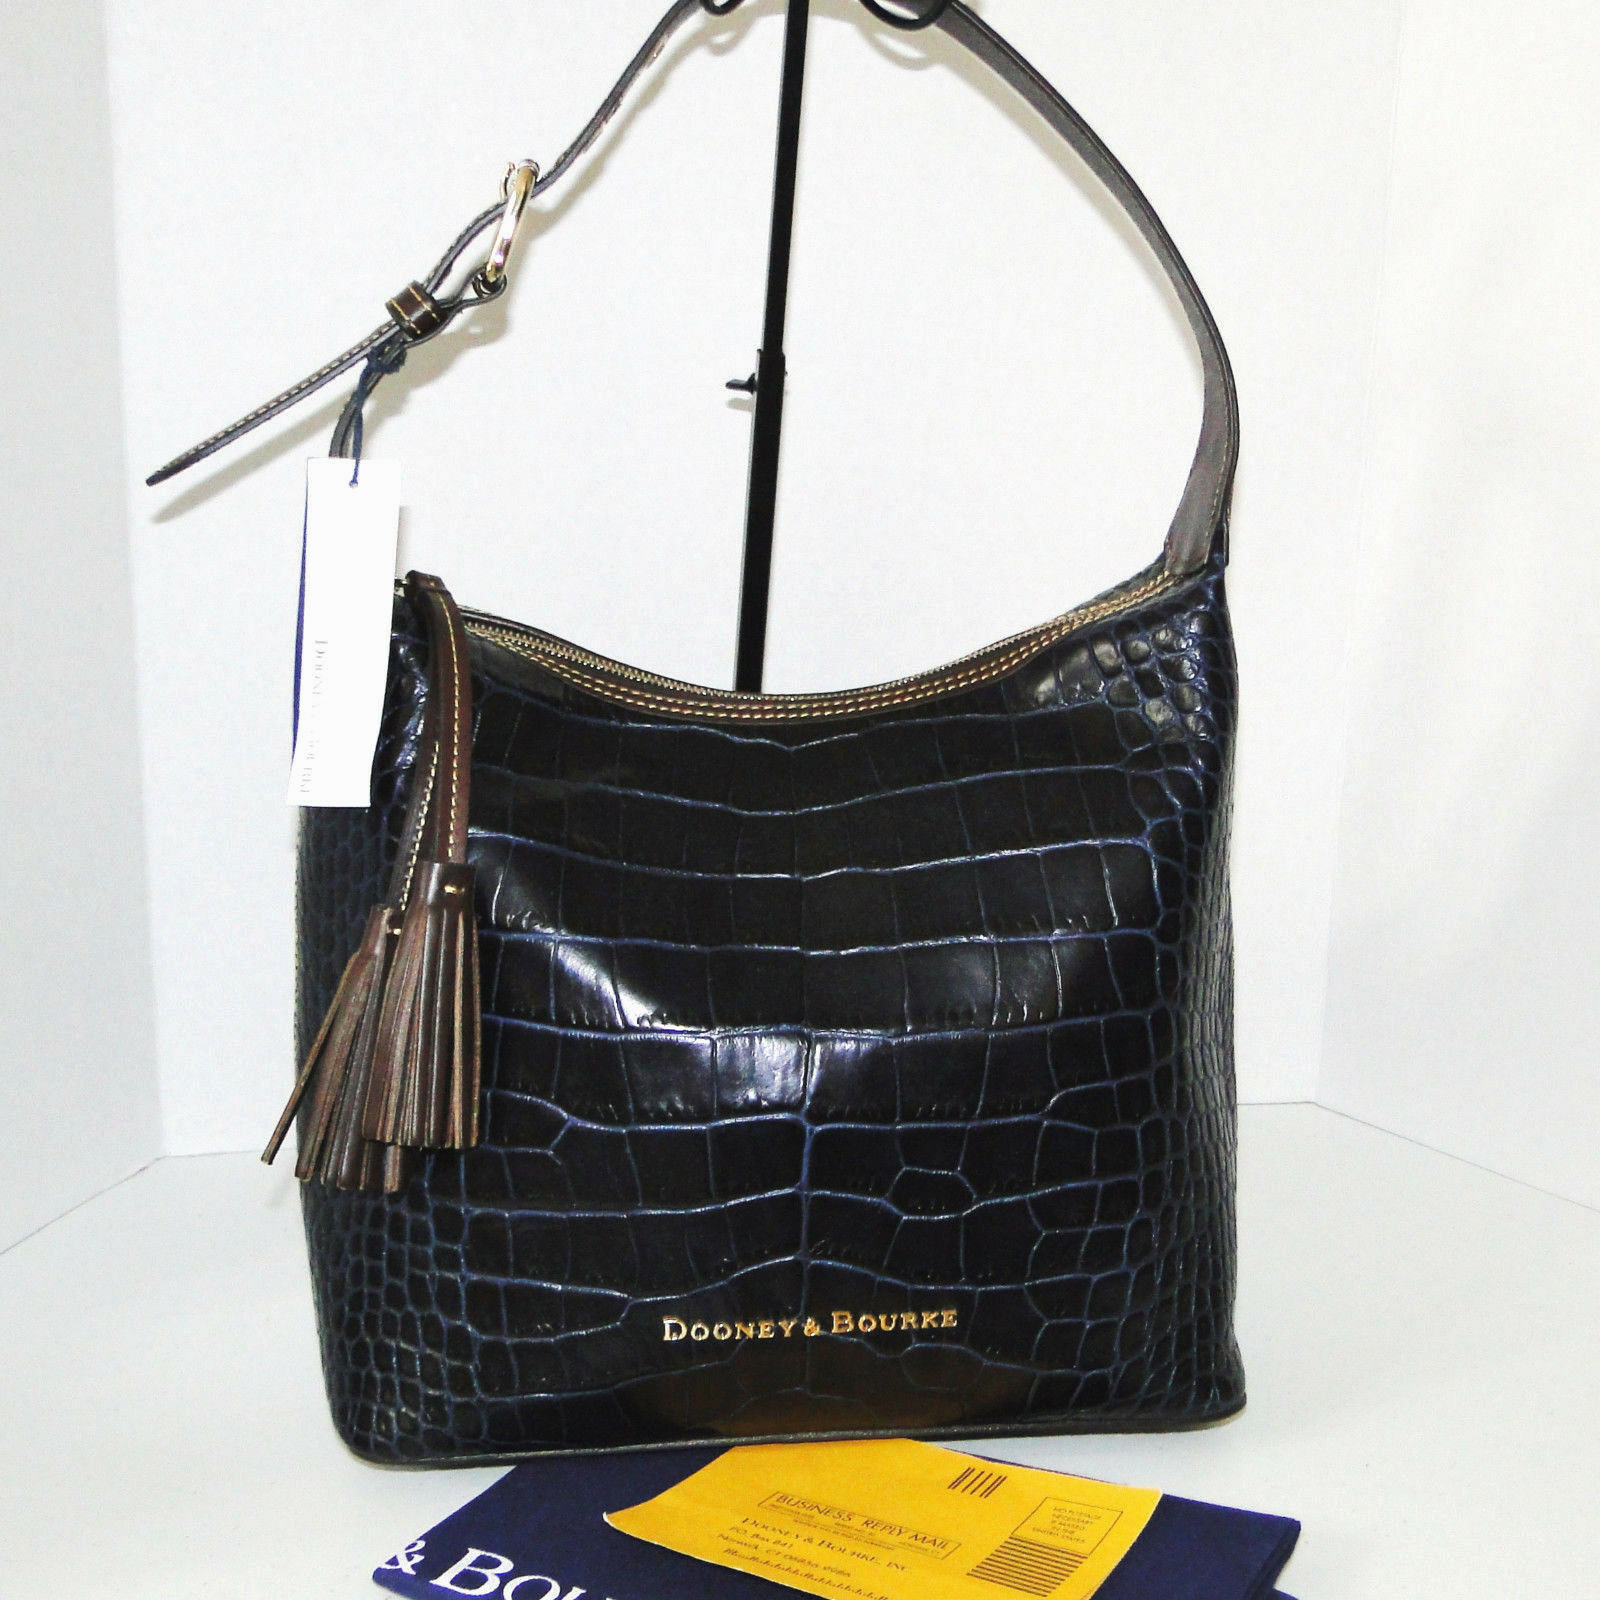 Dooney & Bourke Paige Sac Leather Croco Emb Hobo Blue